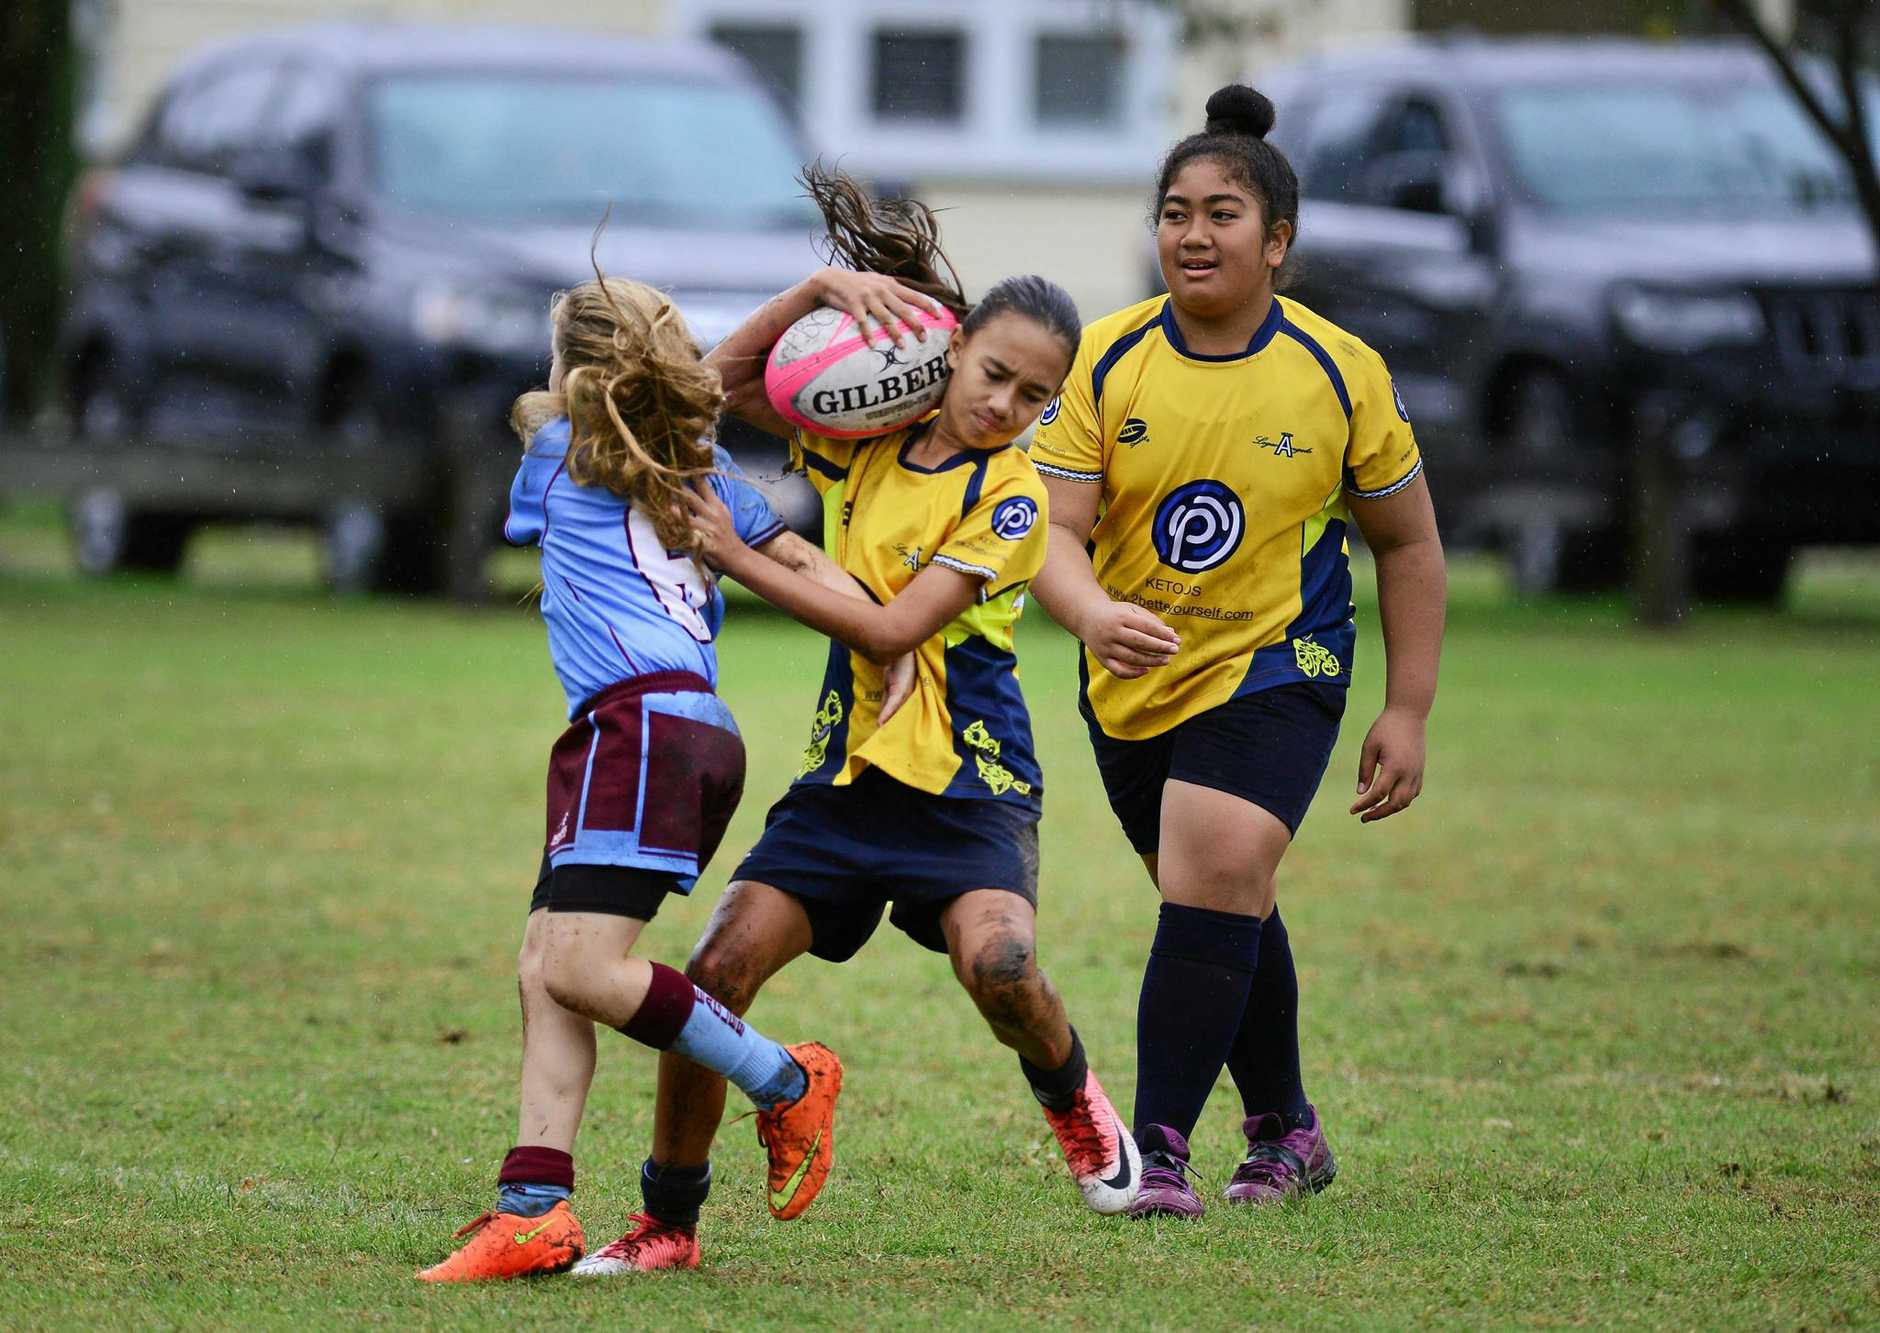 RUGBY SEVENS: The Under 12s from Logan Angels and Norths Eagles in action at Woodend Park.